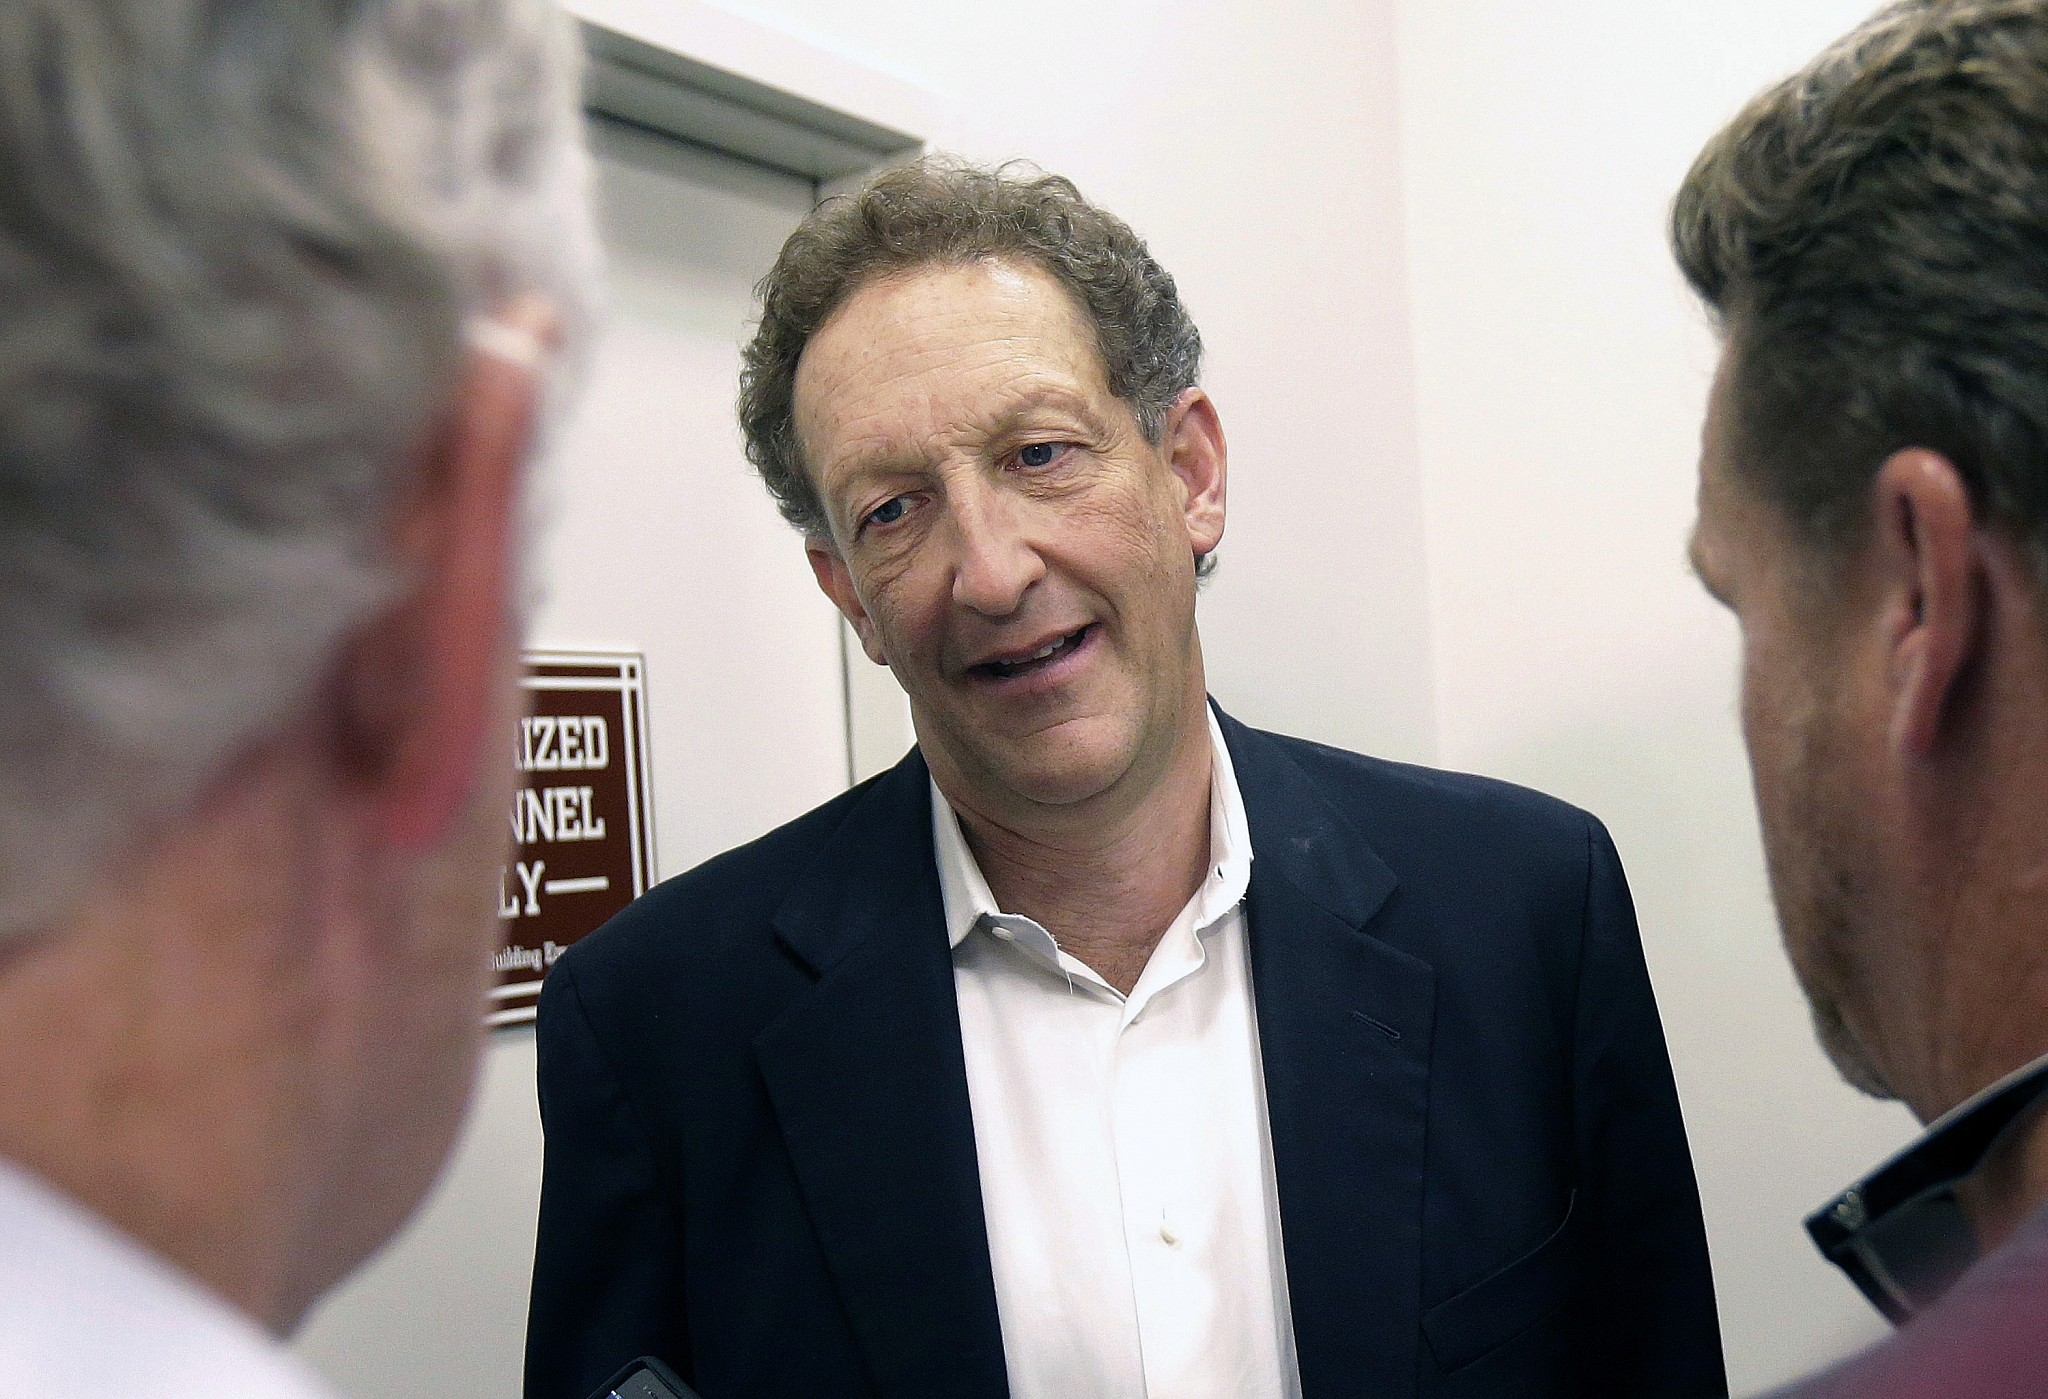 Giants CEO Larry Baer taking 'personal time' away